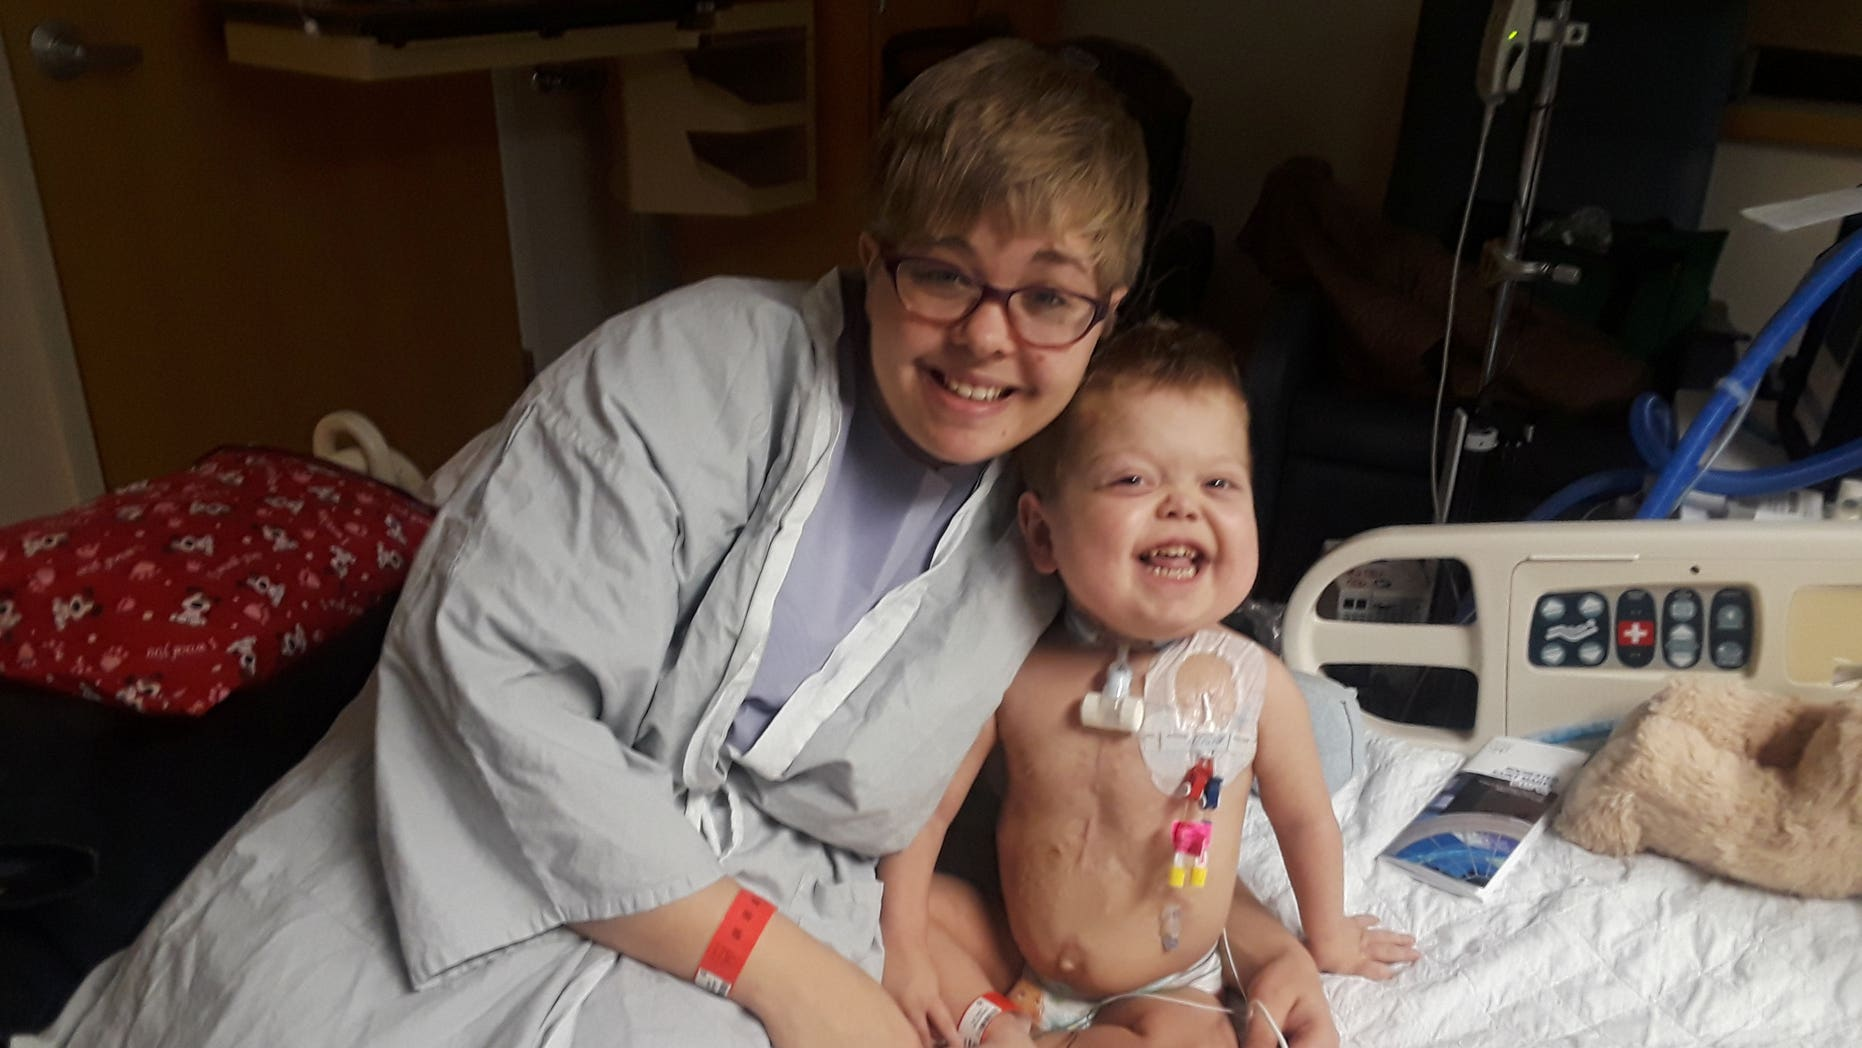 Jace Josephson with his mom Akasha are pictured ahead of the kidney transplant.